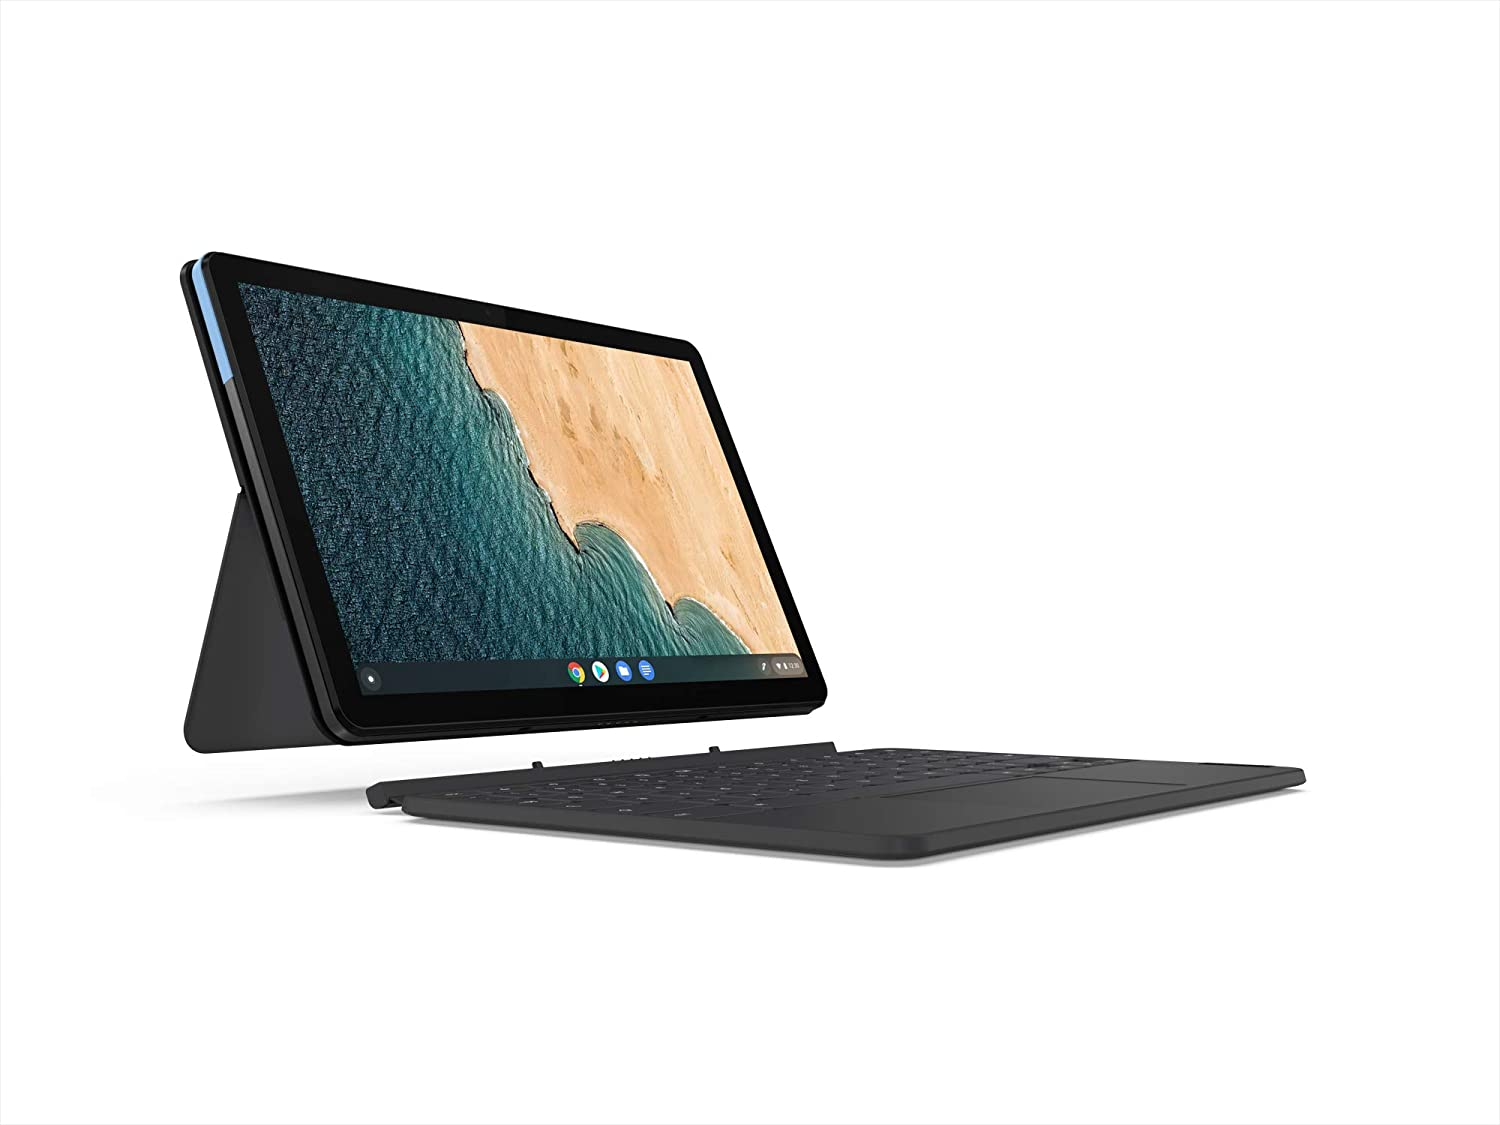 7 Best Laptop For Work Under 500 In 2021 [Buying Guide]